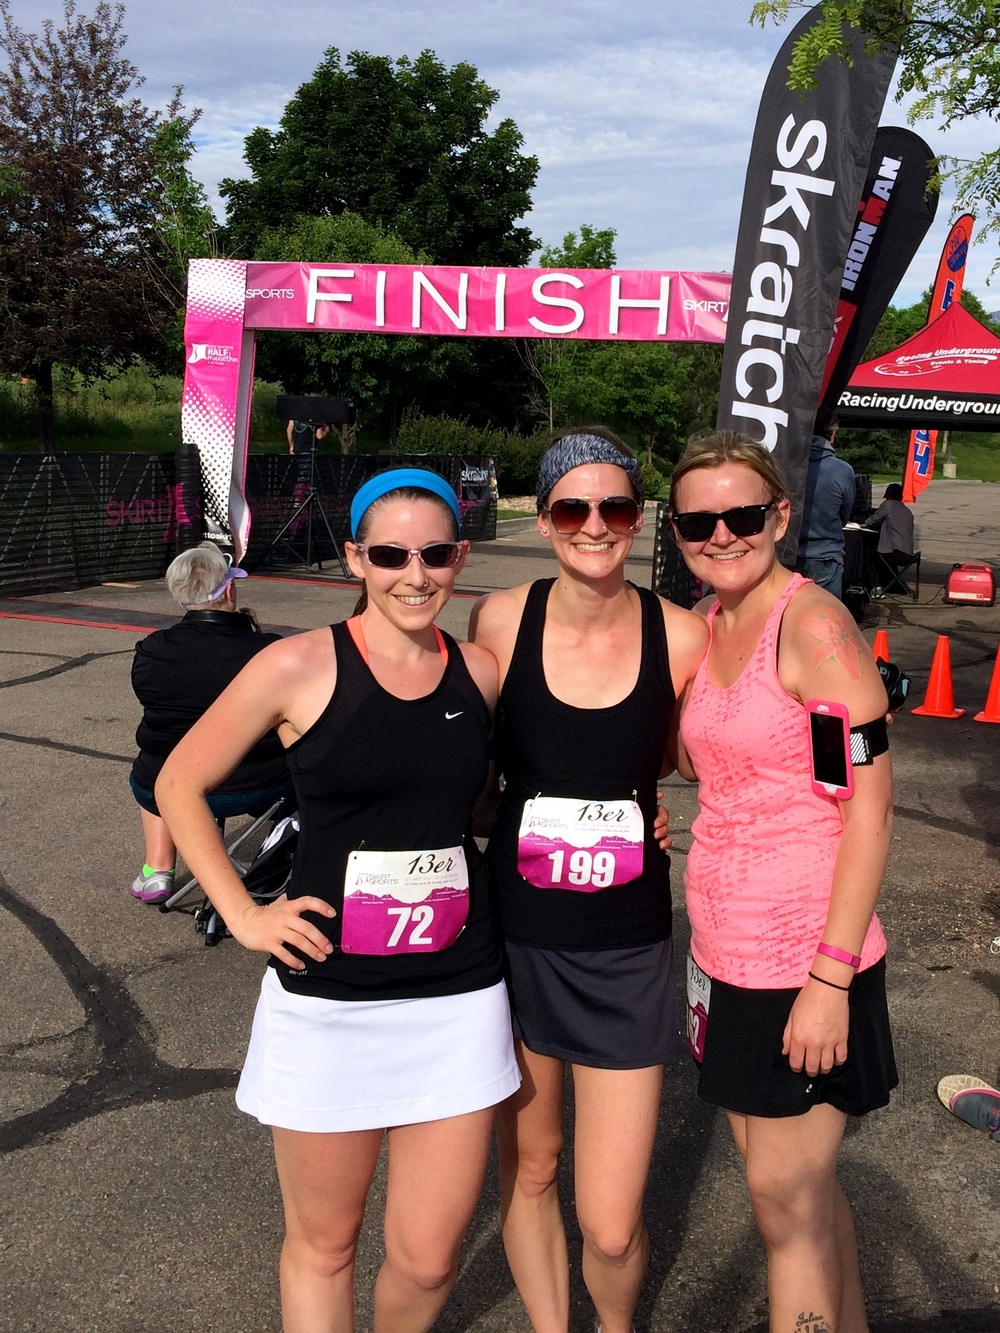 A picture from my longest run yet! Excited to run my first half with these beautiful ladies:Paige, me, and Melanie at the Skirt Sports 10k last summer.